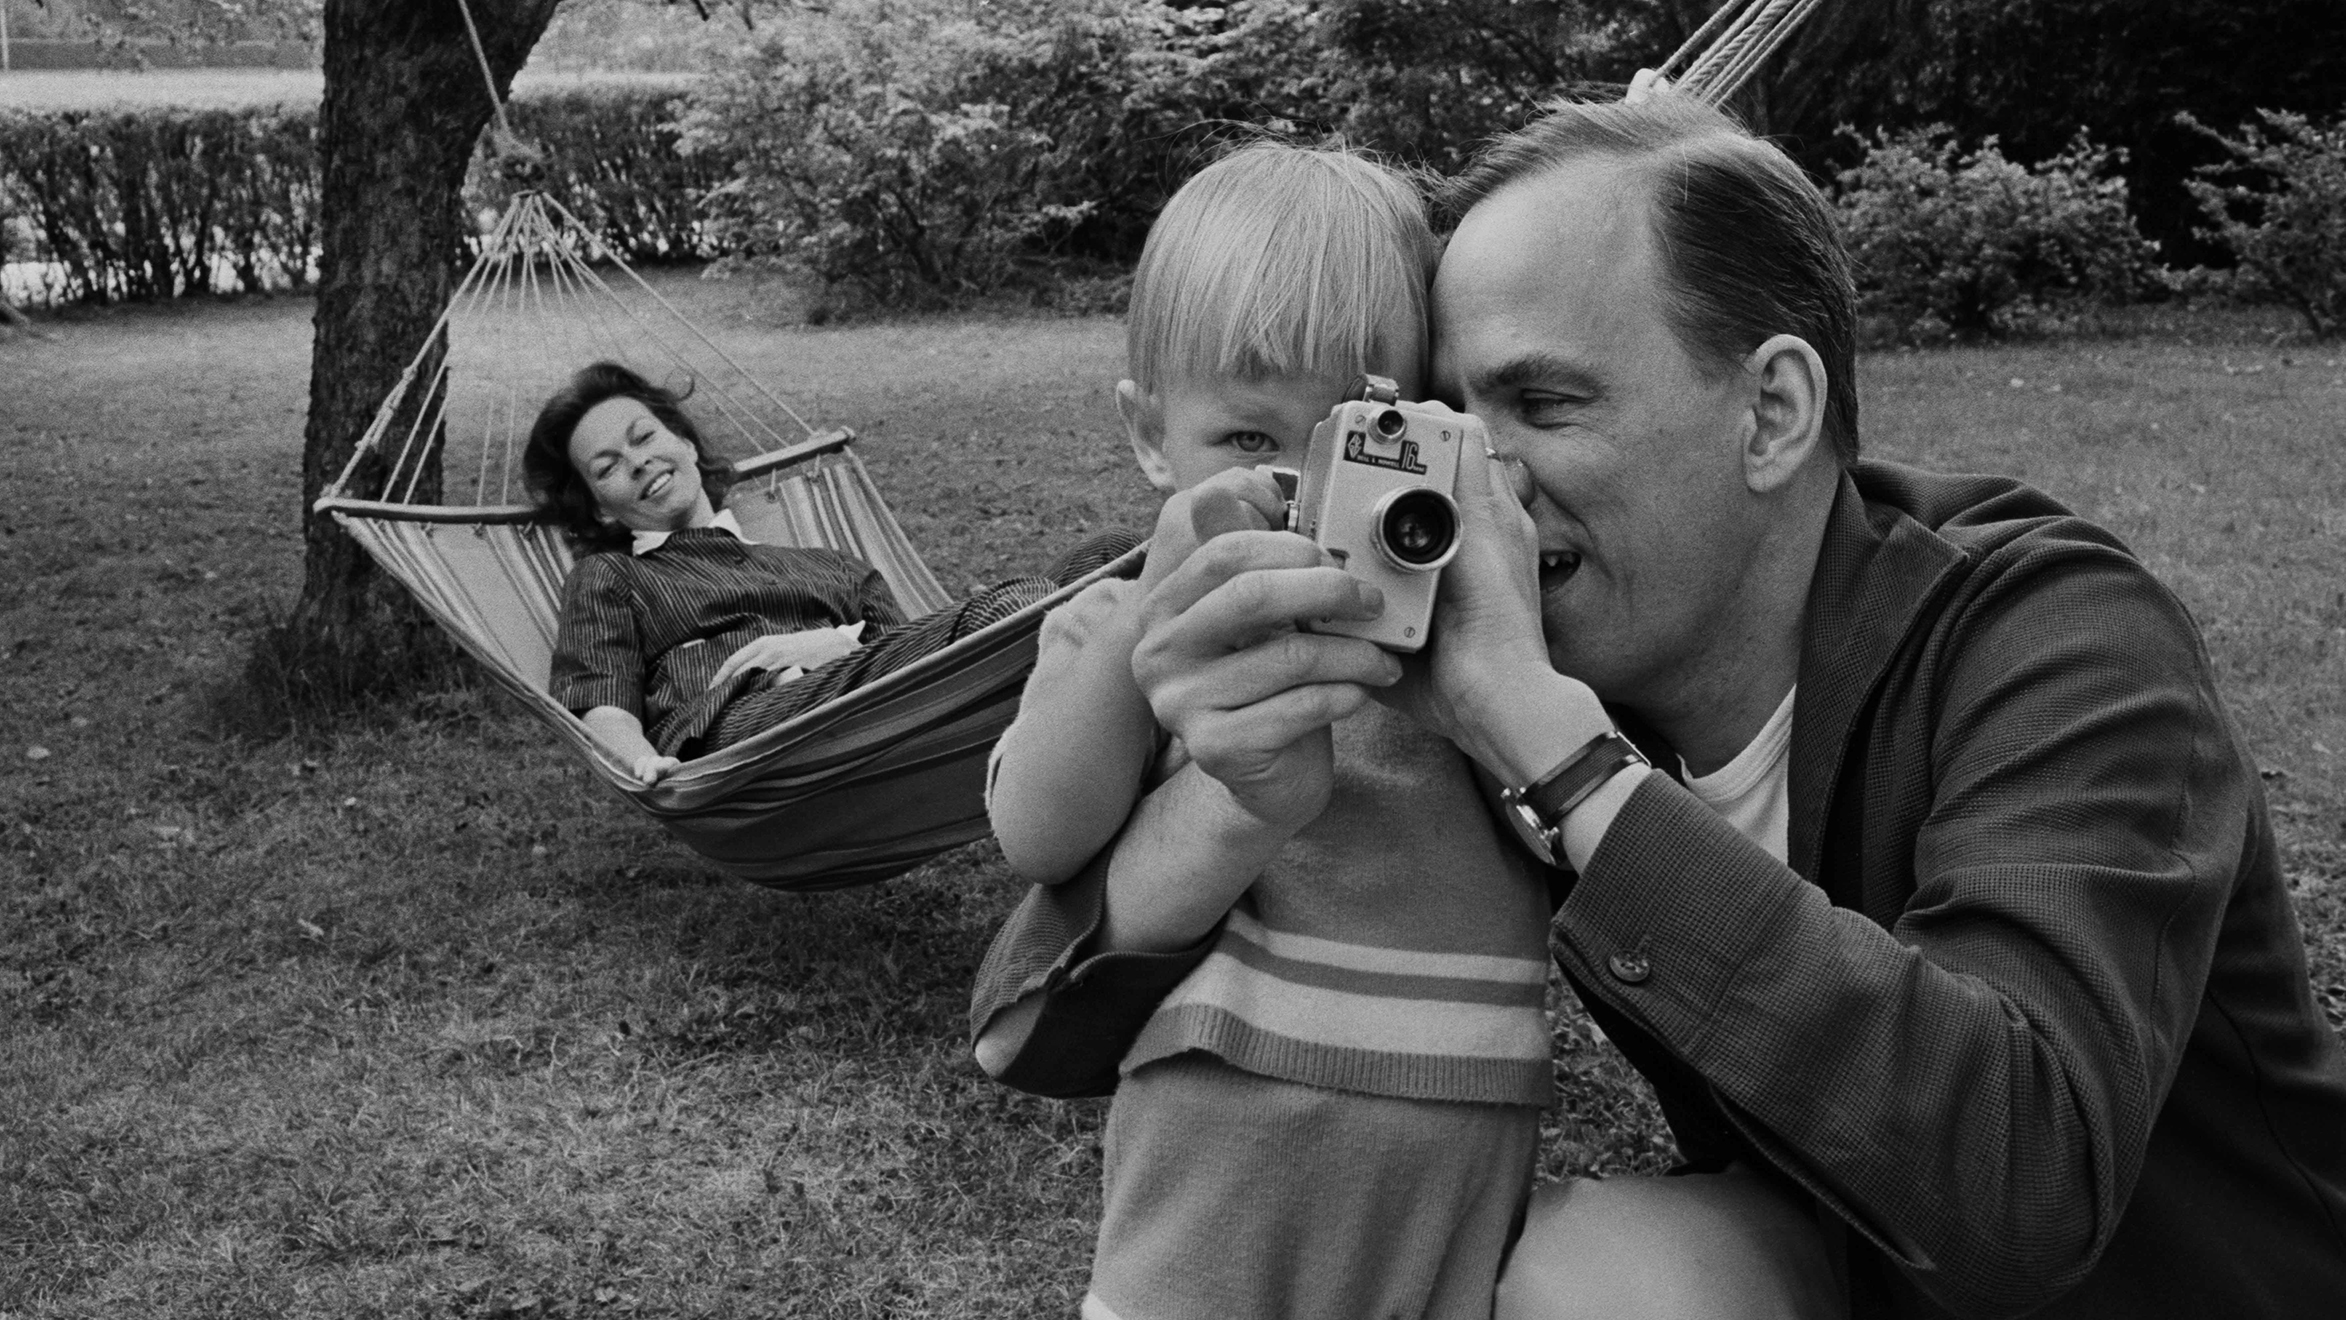 Searching for Ingmar Bergman – Le maître